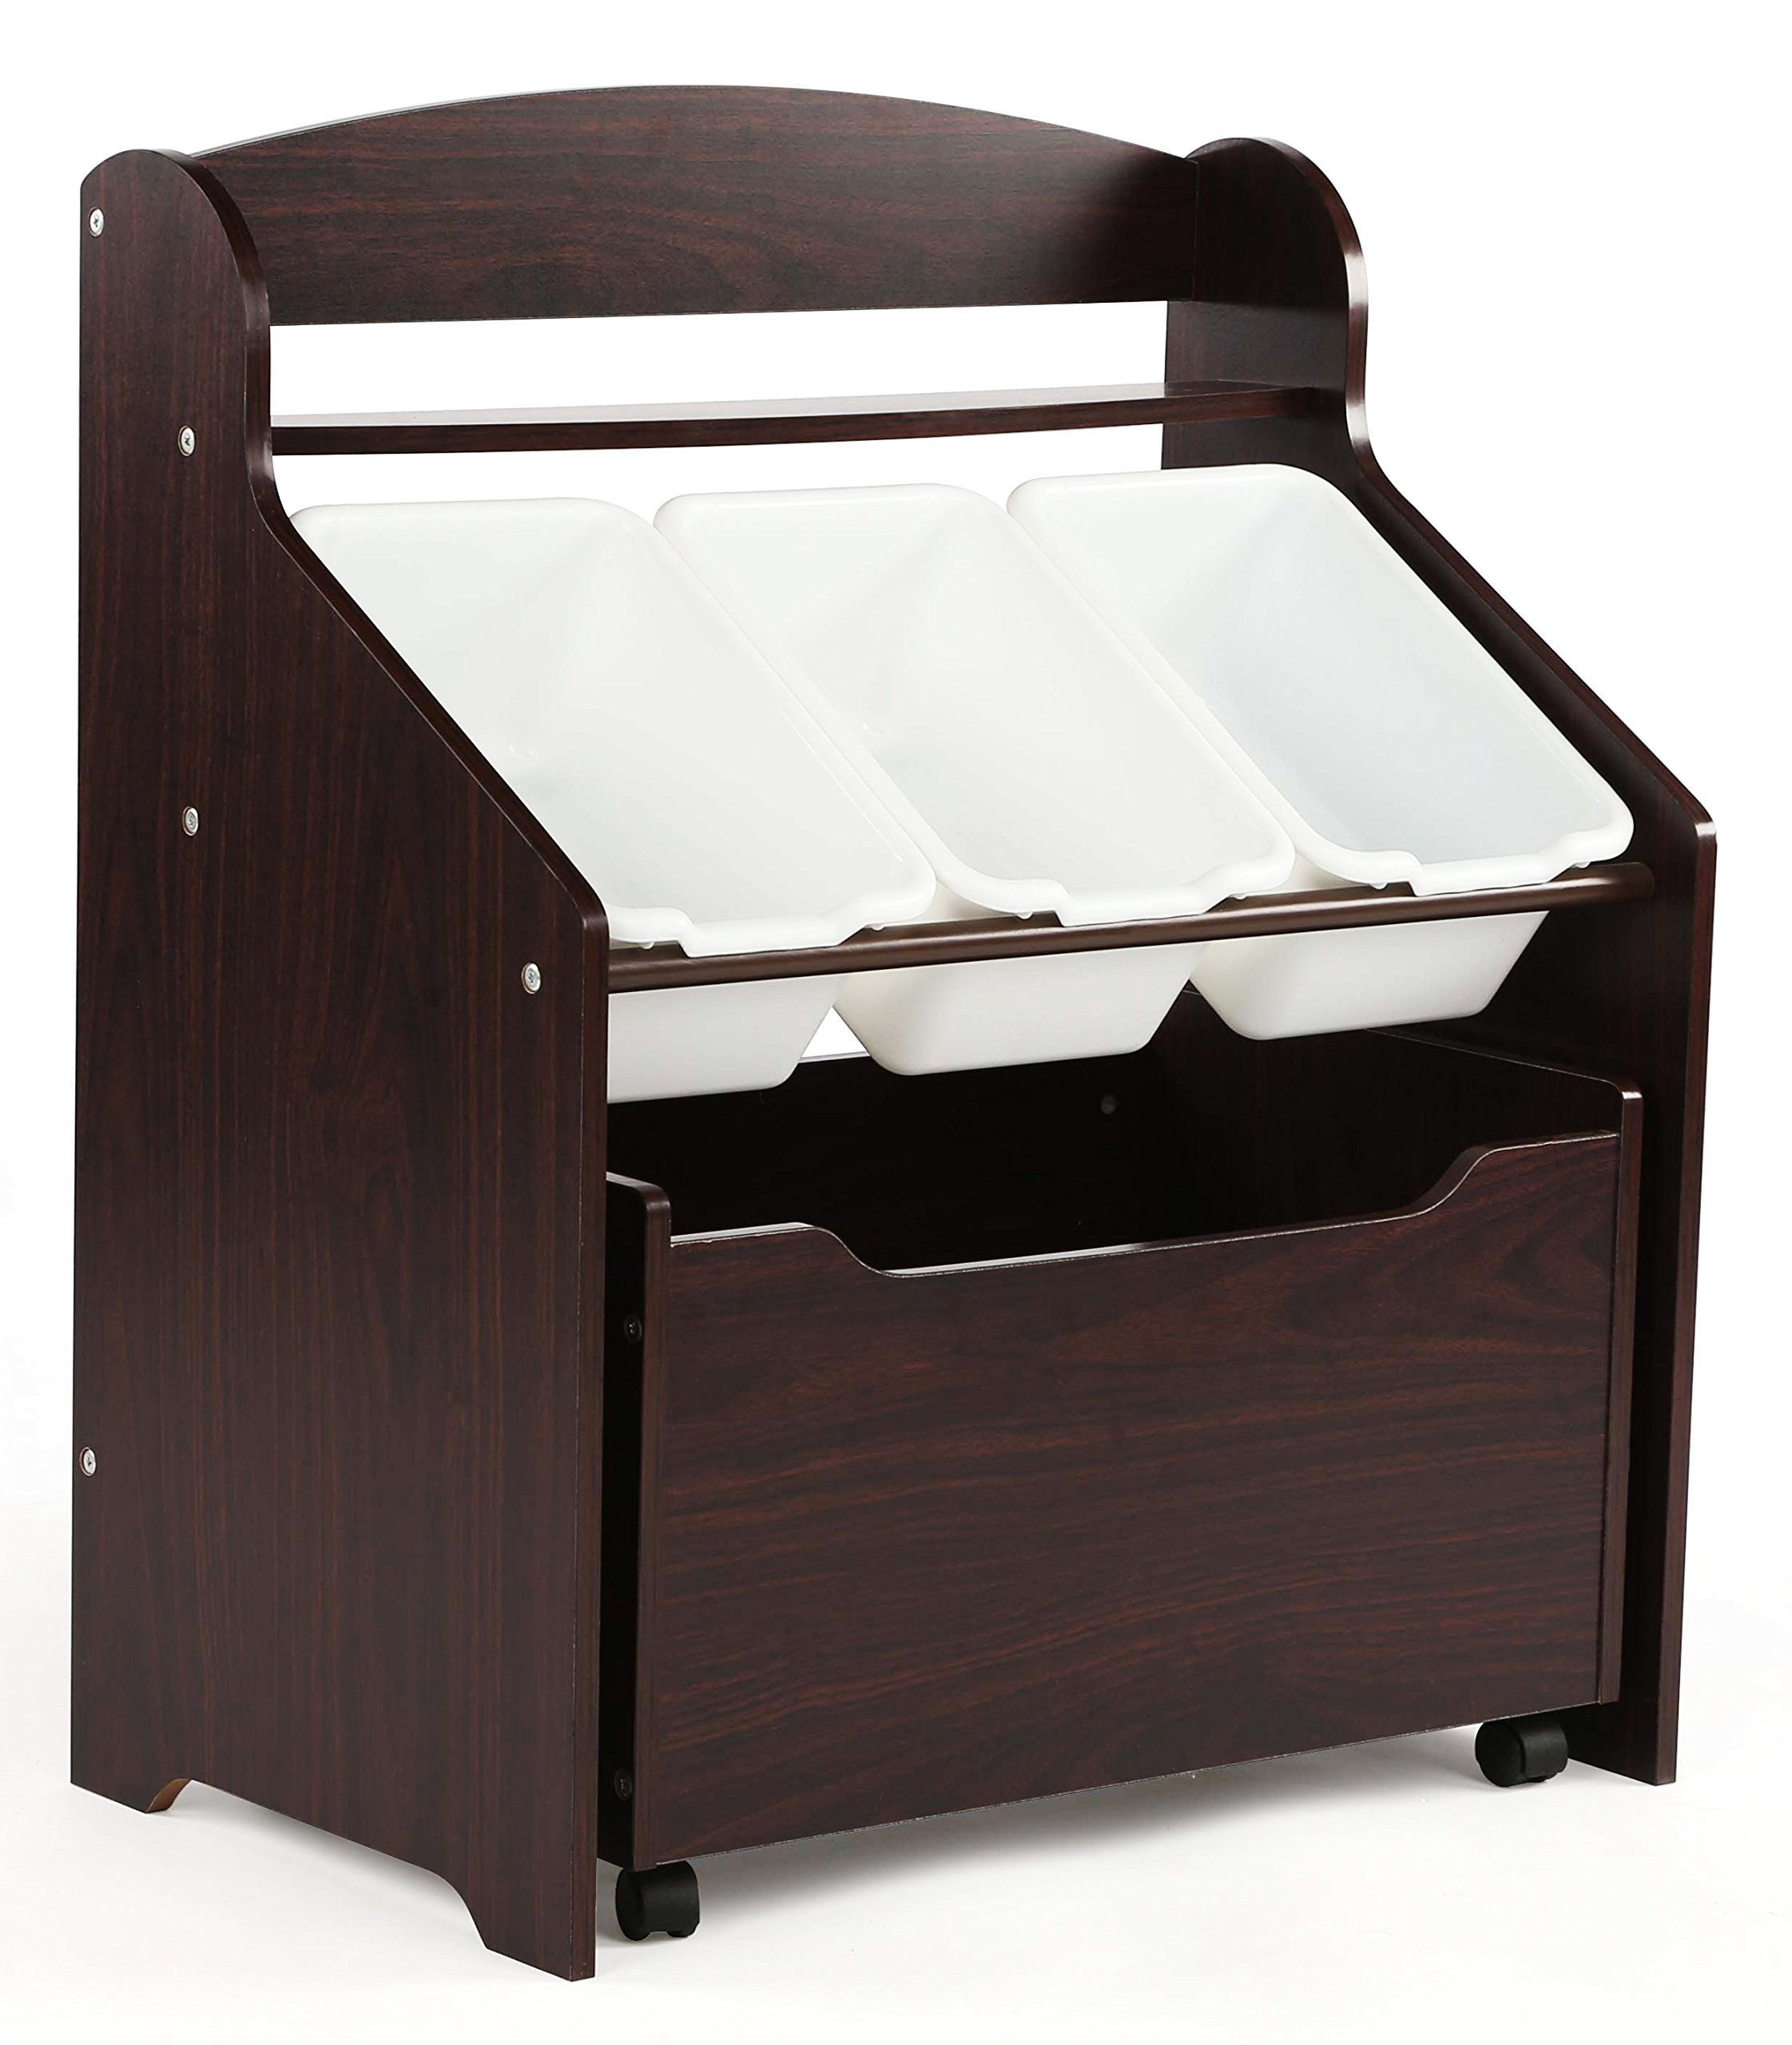 Tot Tutors Kids' Store-All Unit, Espresso Finish